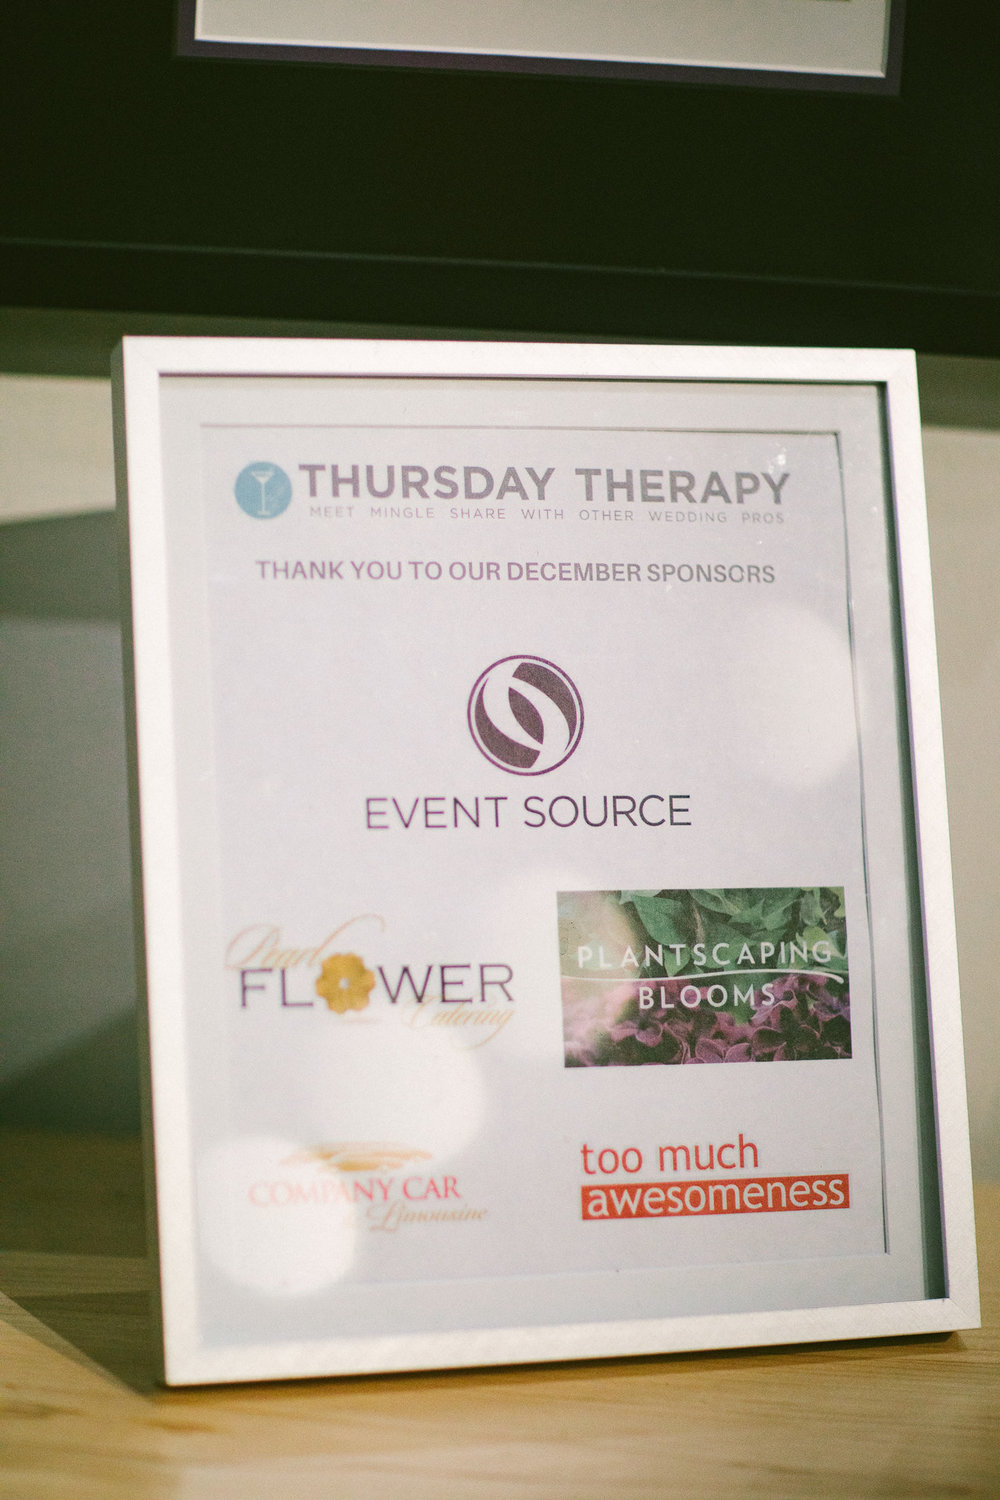 00020-Thursday-Therapy.jpg